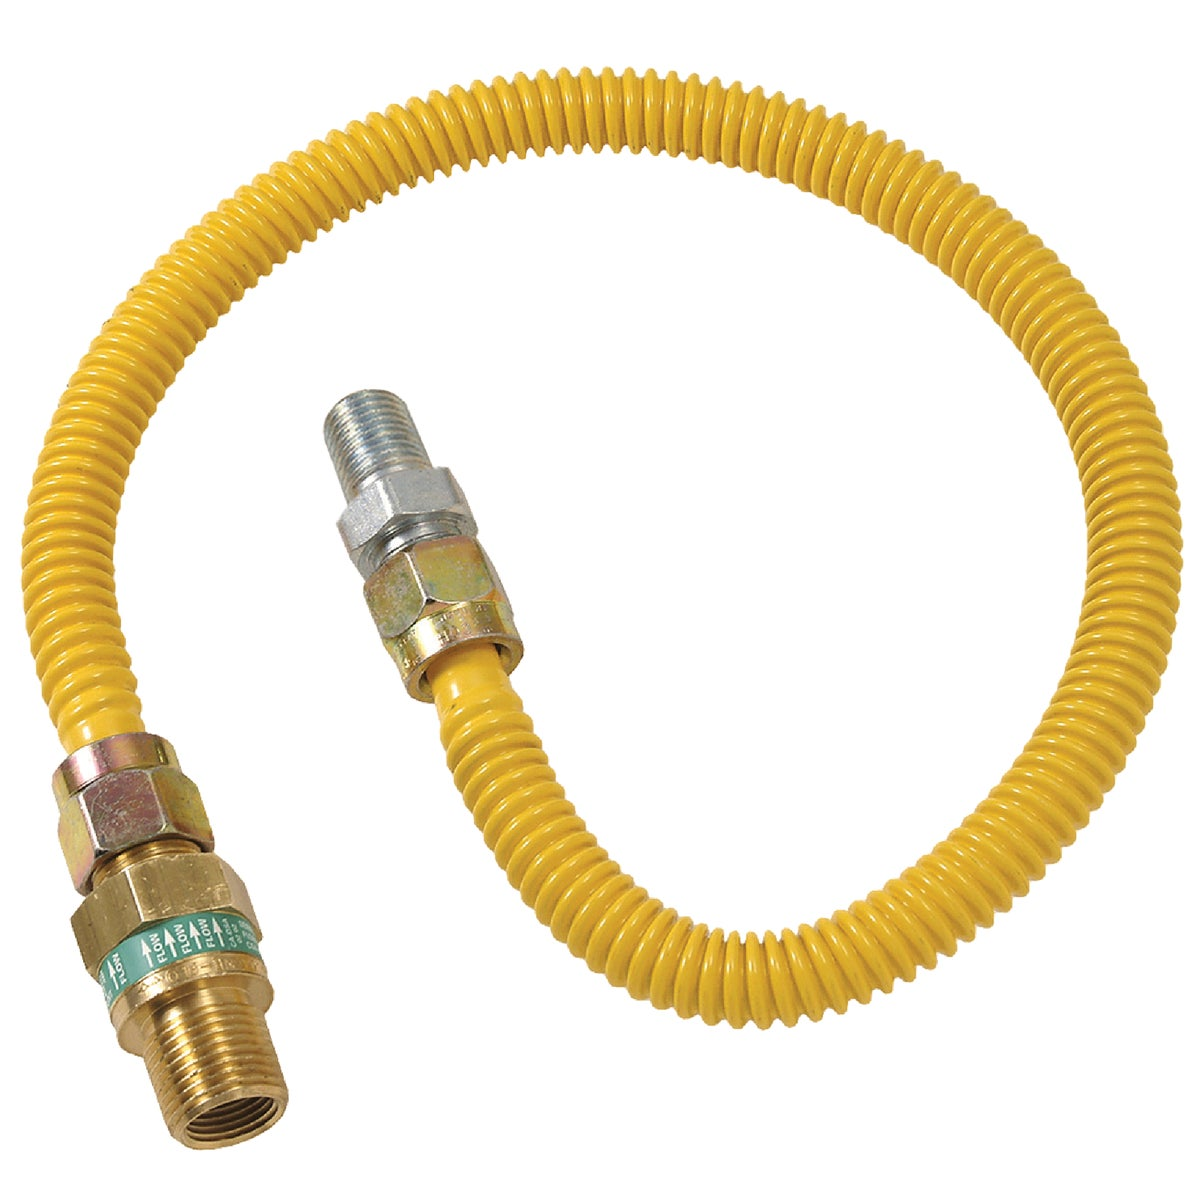 1/2X1/2-24 GAS CONNECTOR